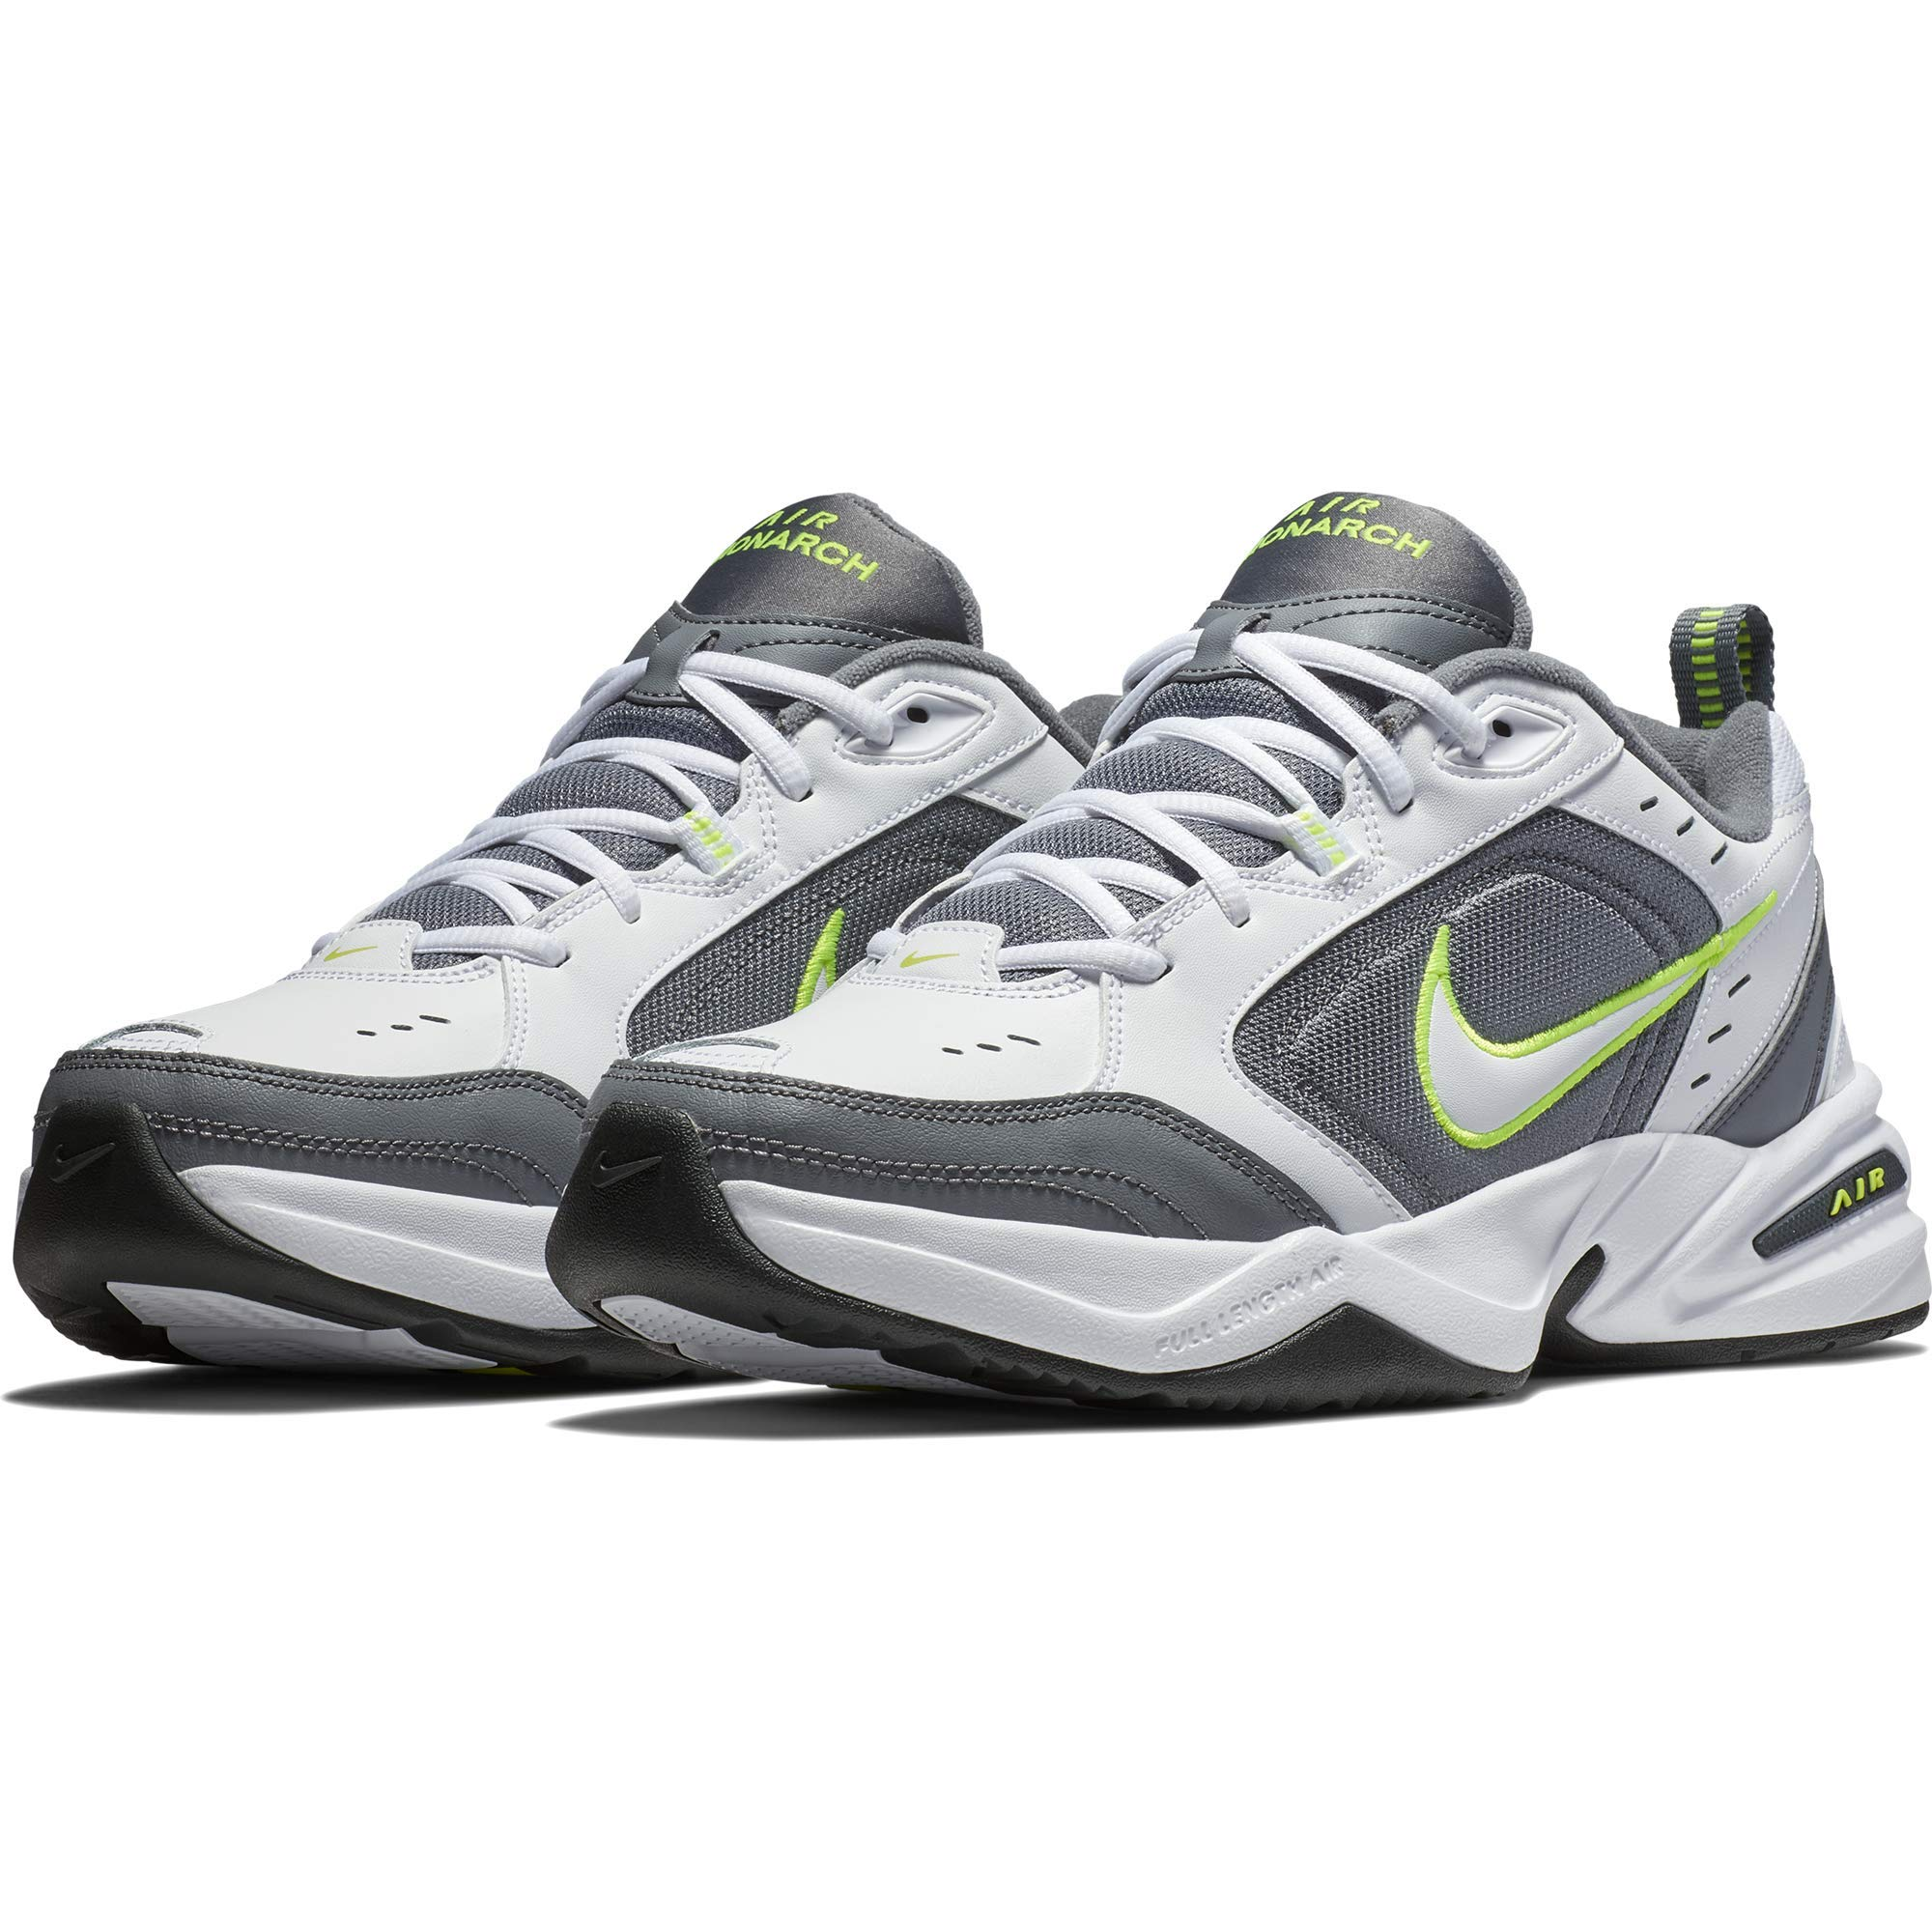 Nike Men's Air Monarch IV Cross Trainer, White-Cool Grey-Anthracite, 10.5 Regular US by Nike